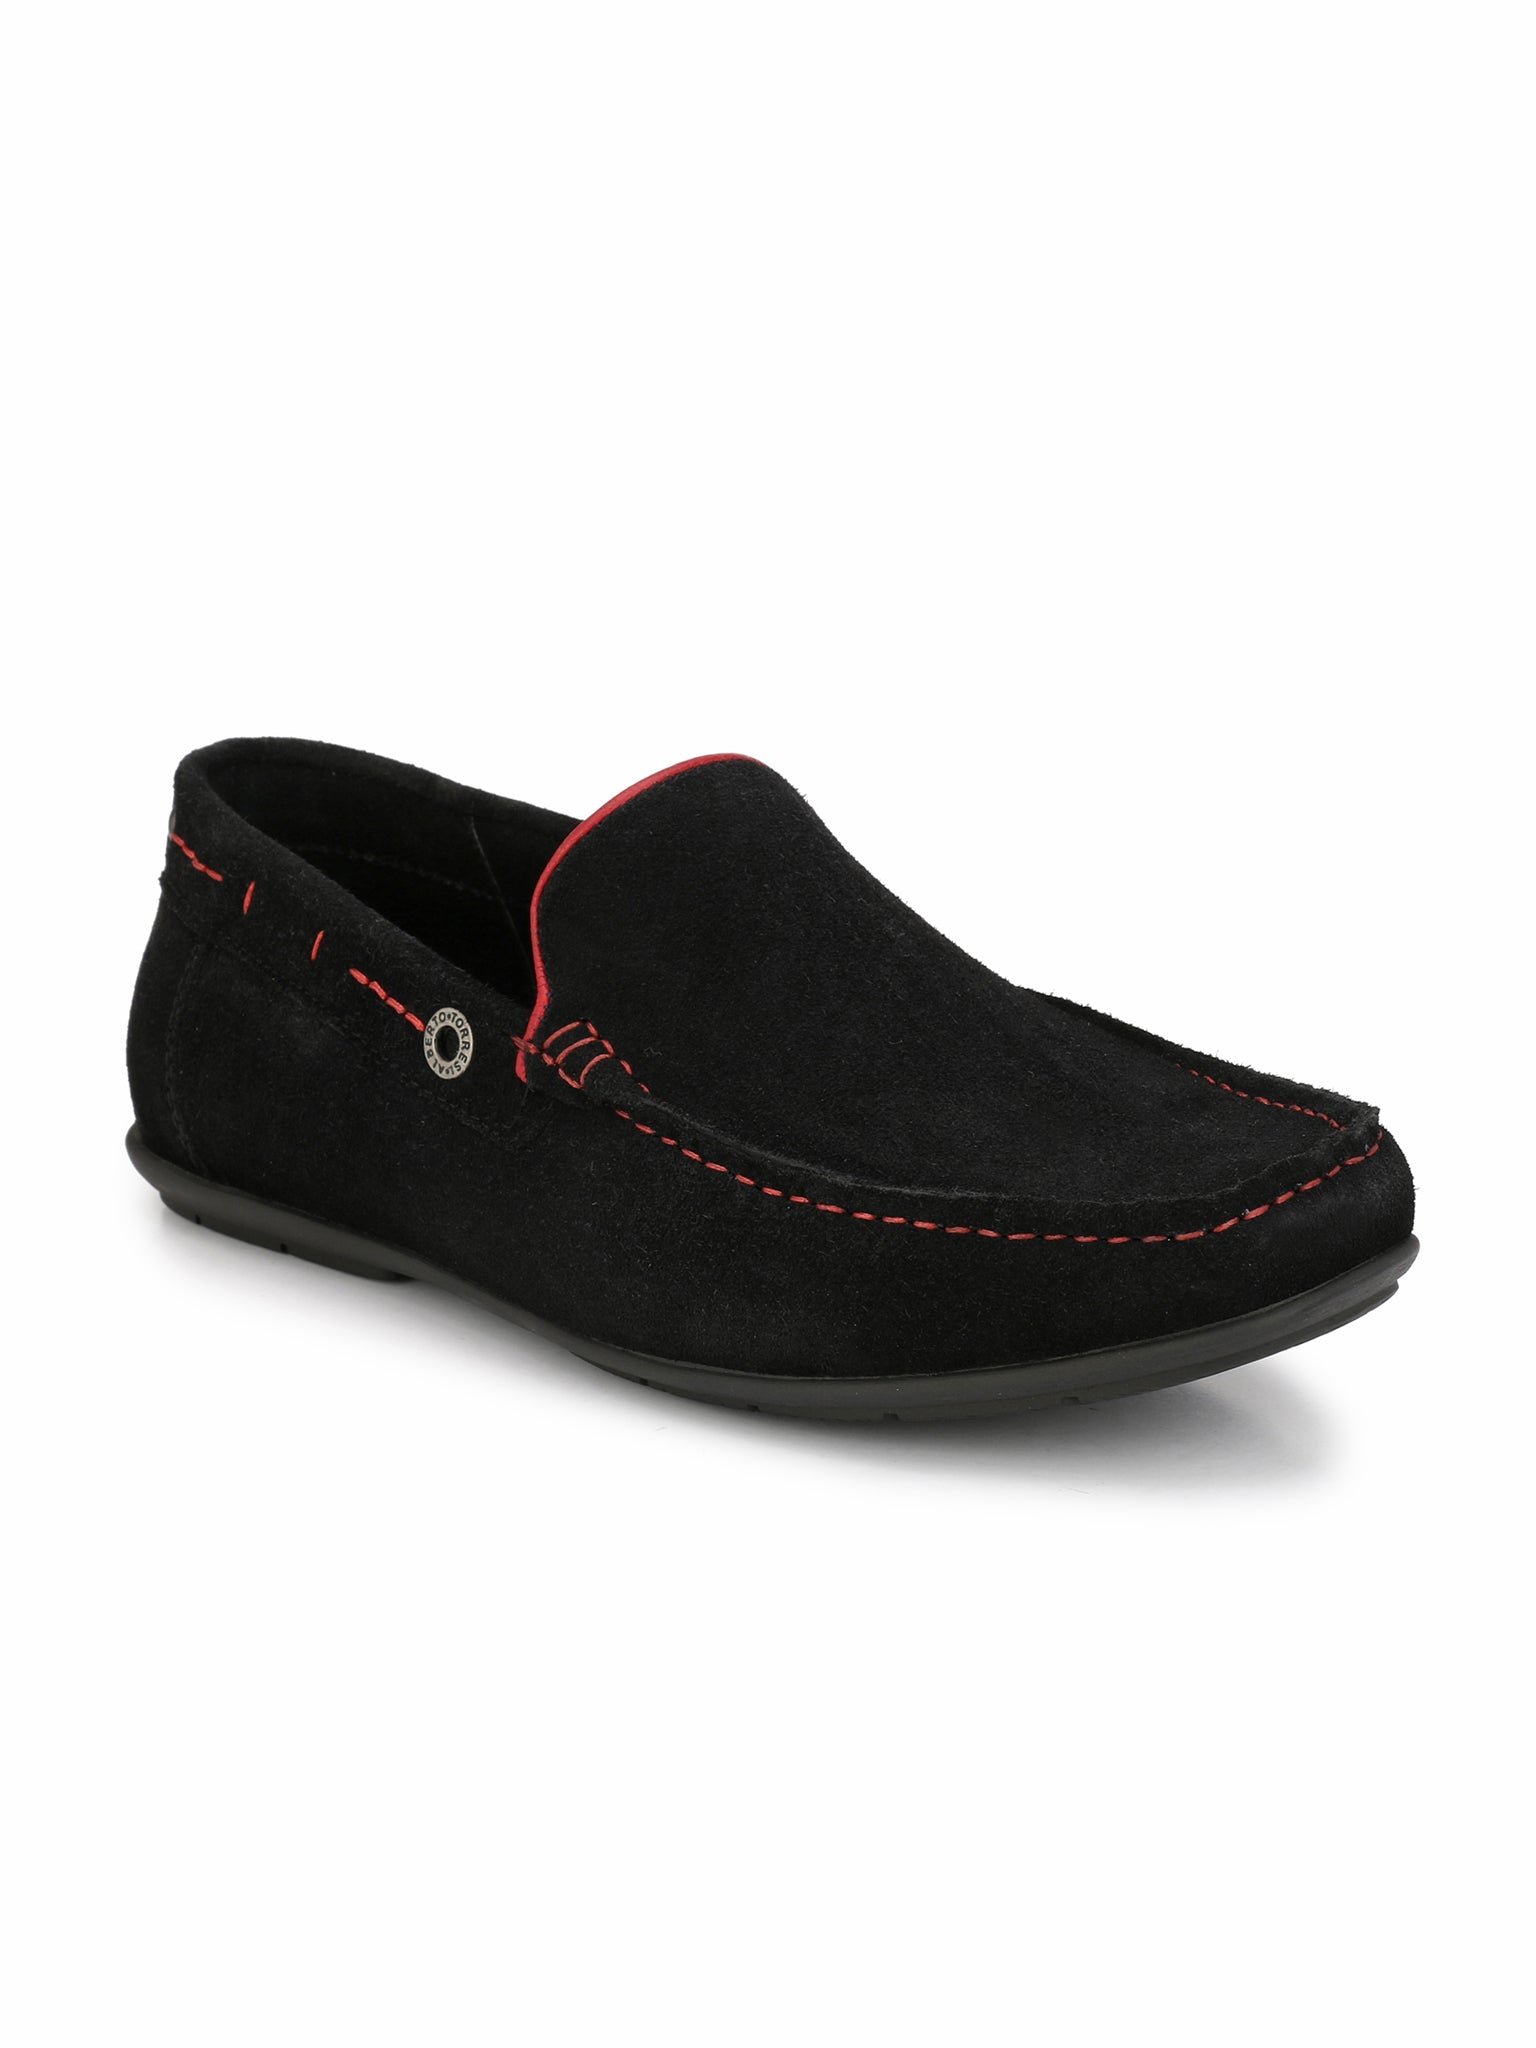 Alberto Torresi Donotepo Black Casual Shoes